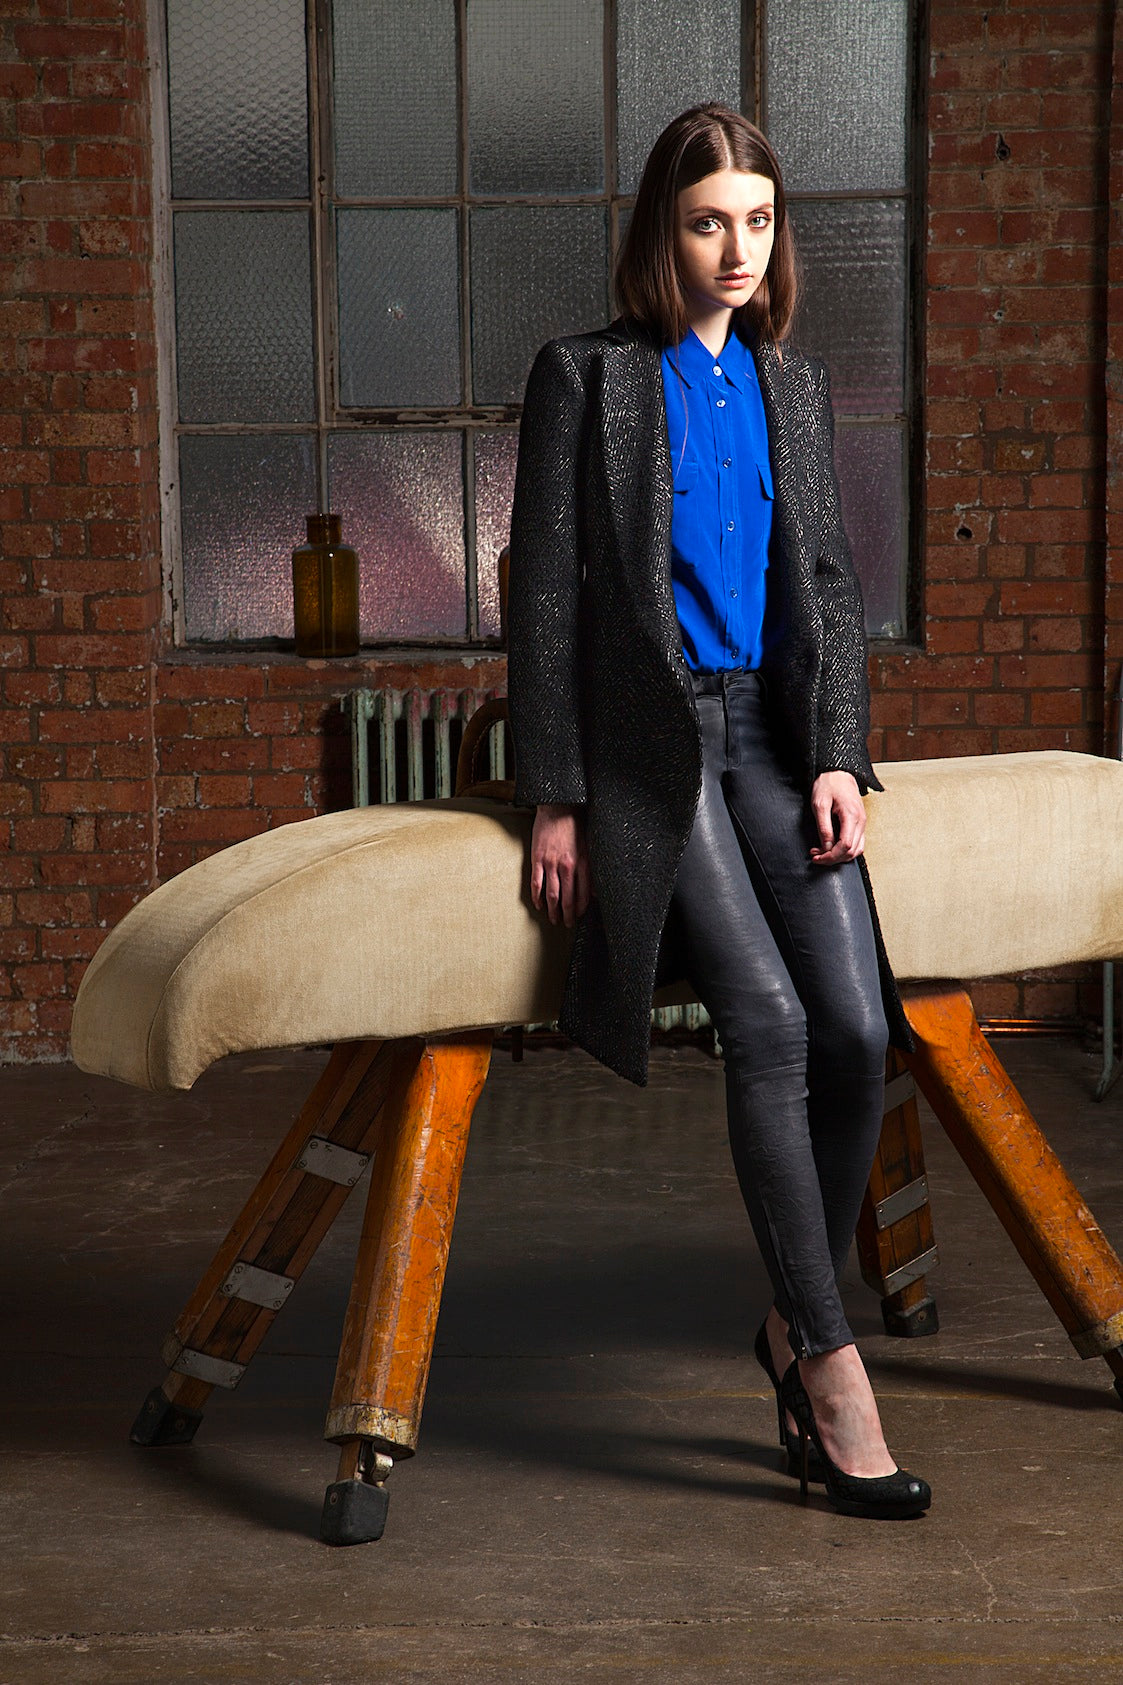 donna ida, london fashion, london style, grey skinny jeans, leather skinny jeans, leather trousers, blue blouse, blue shirt, button up shirt, collar, black jacket